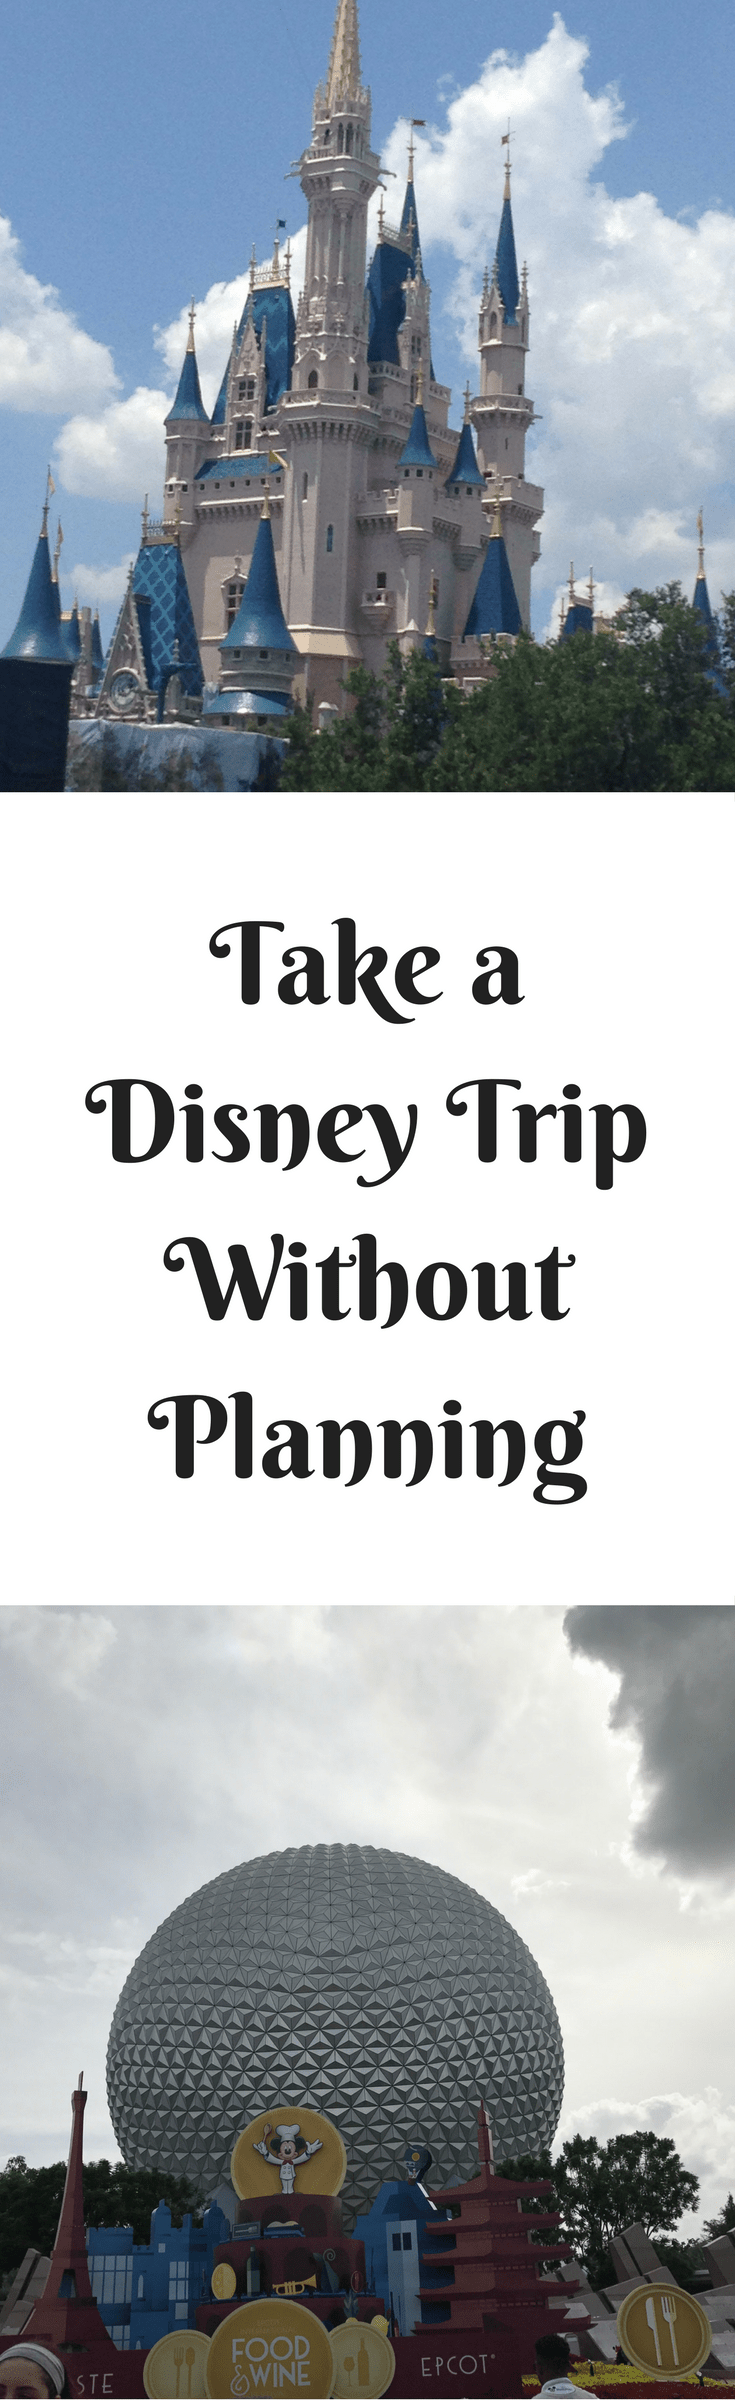 Disney vacations can involve a lot of planning but they don't have to, you can take a Disney Vacation without planning.